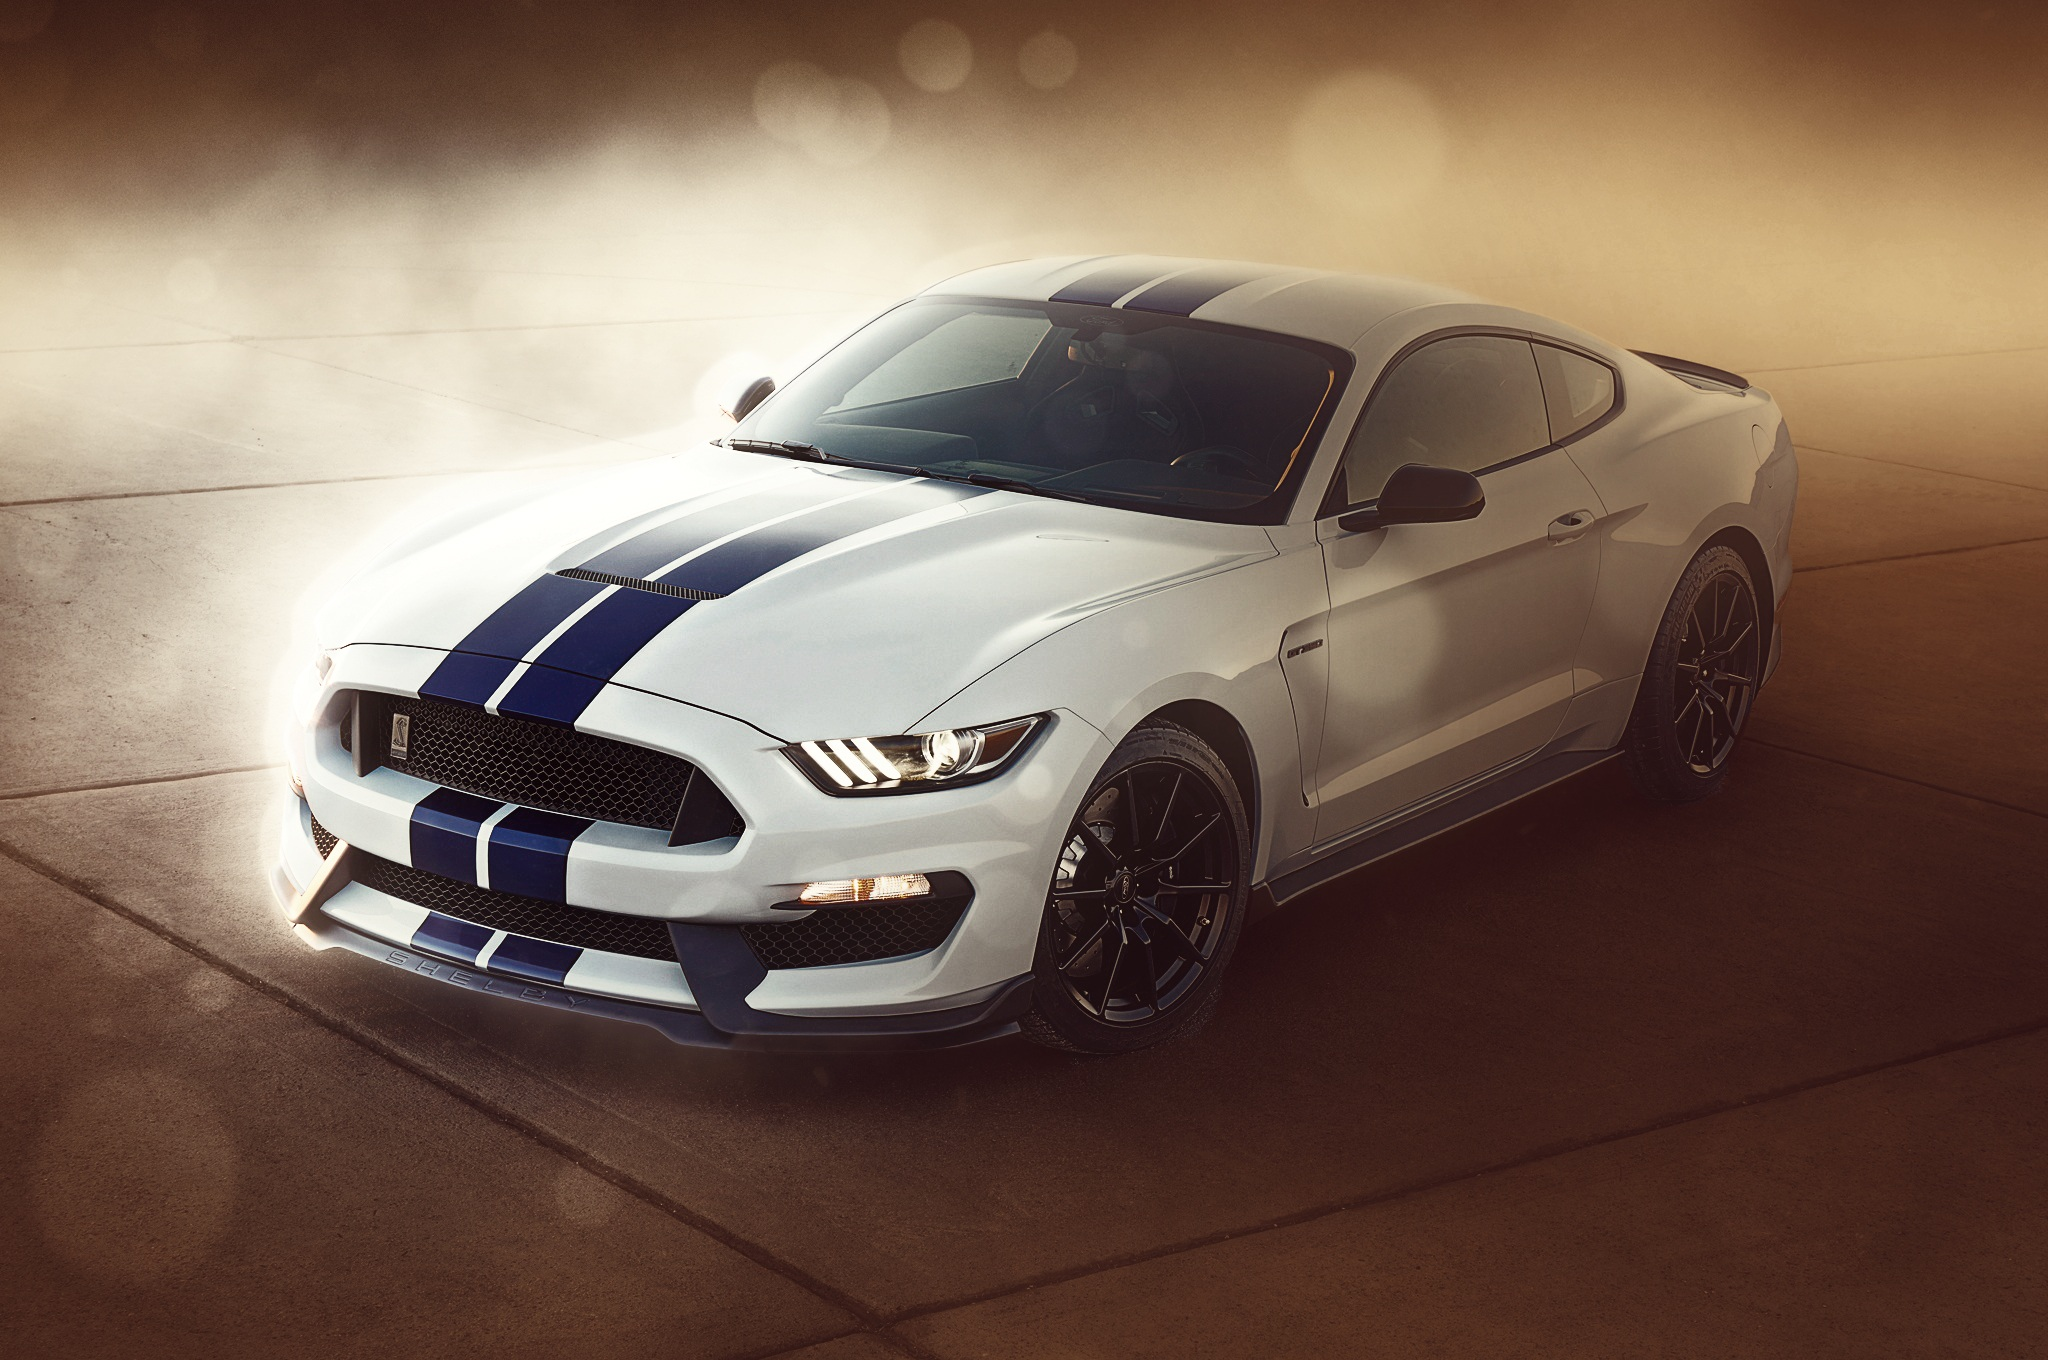 47 Ford Mustang Shelby Hd Wallpapers Background Images